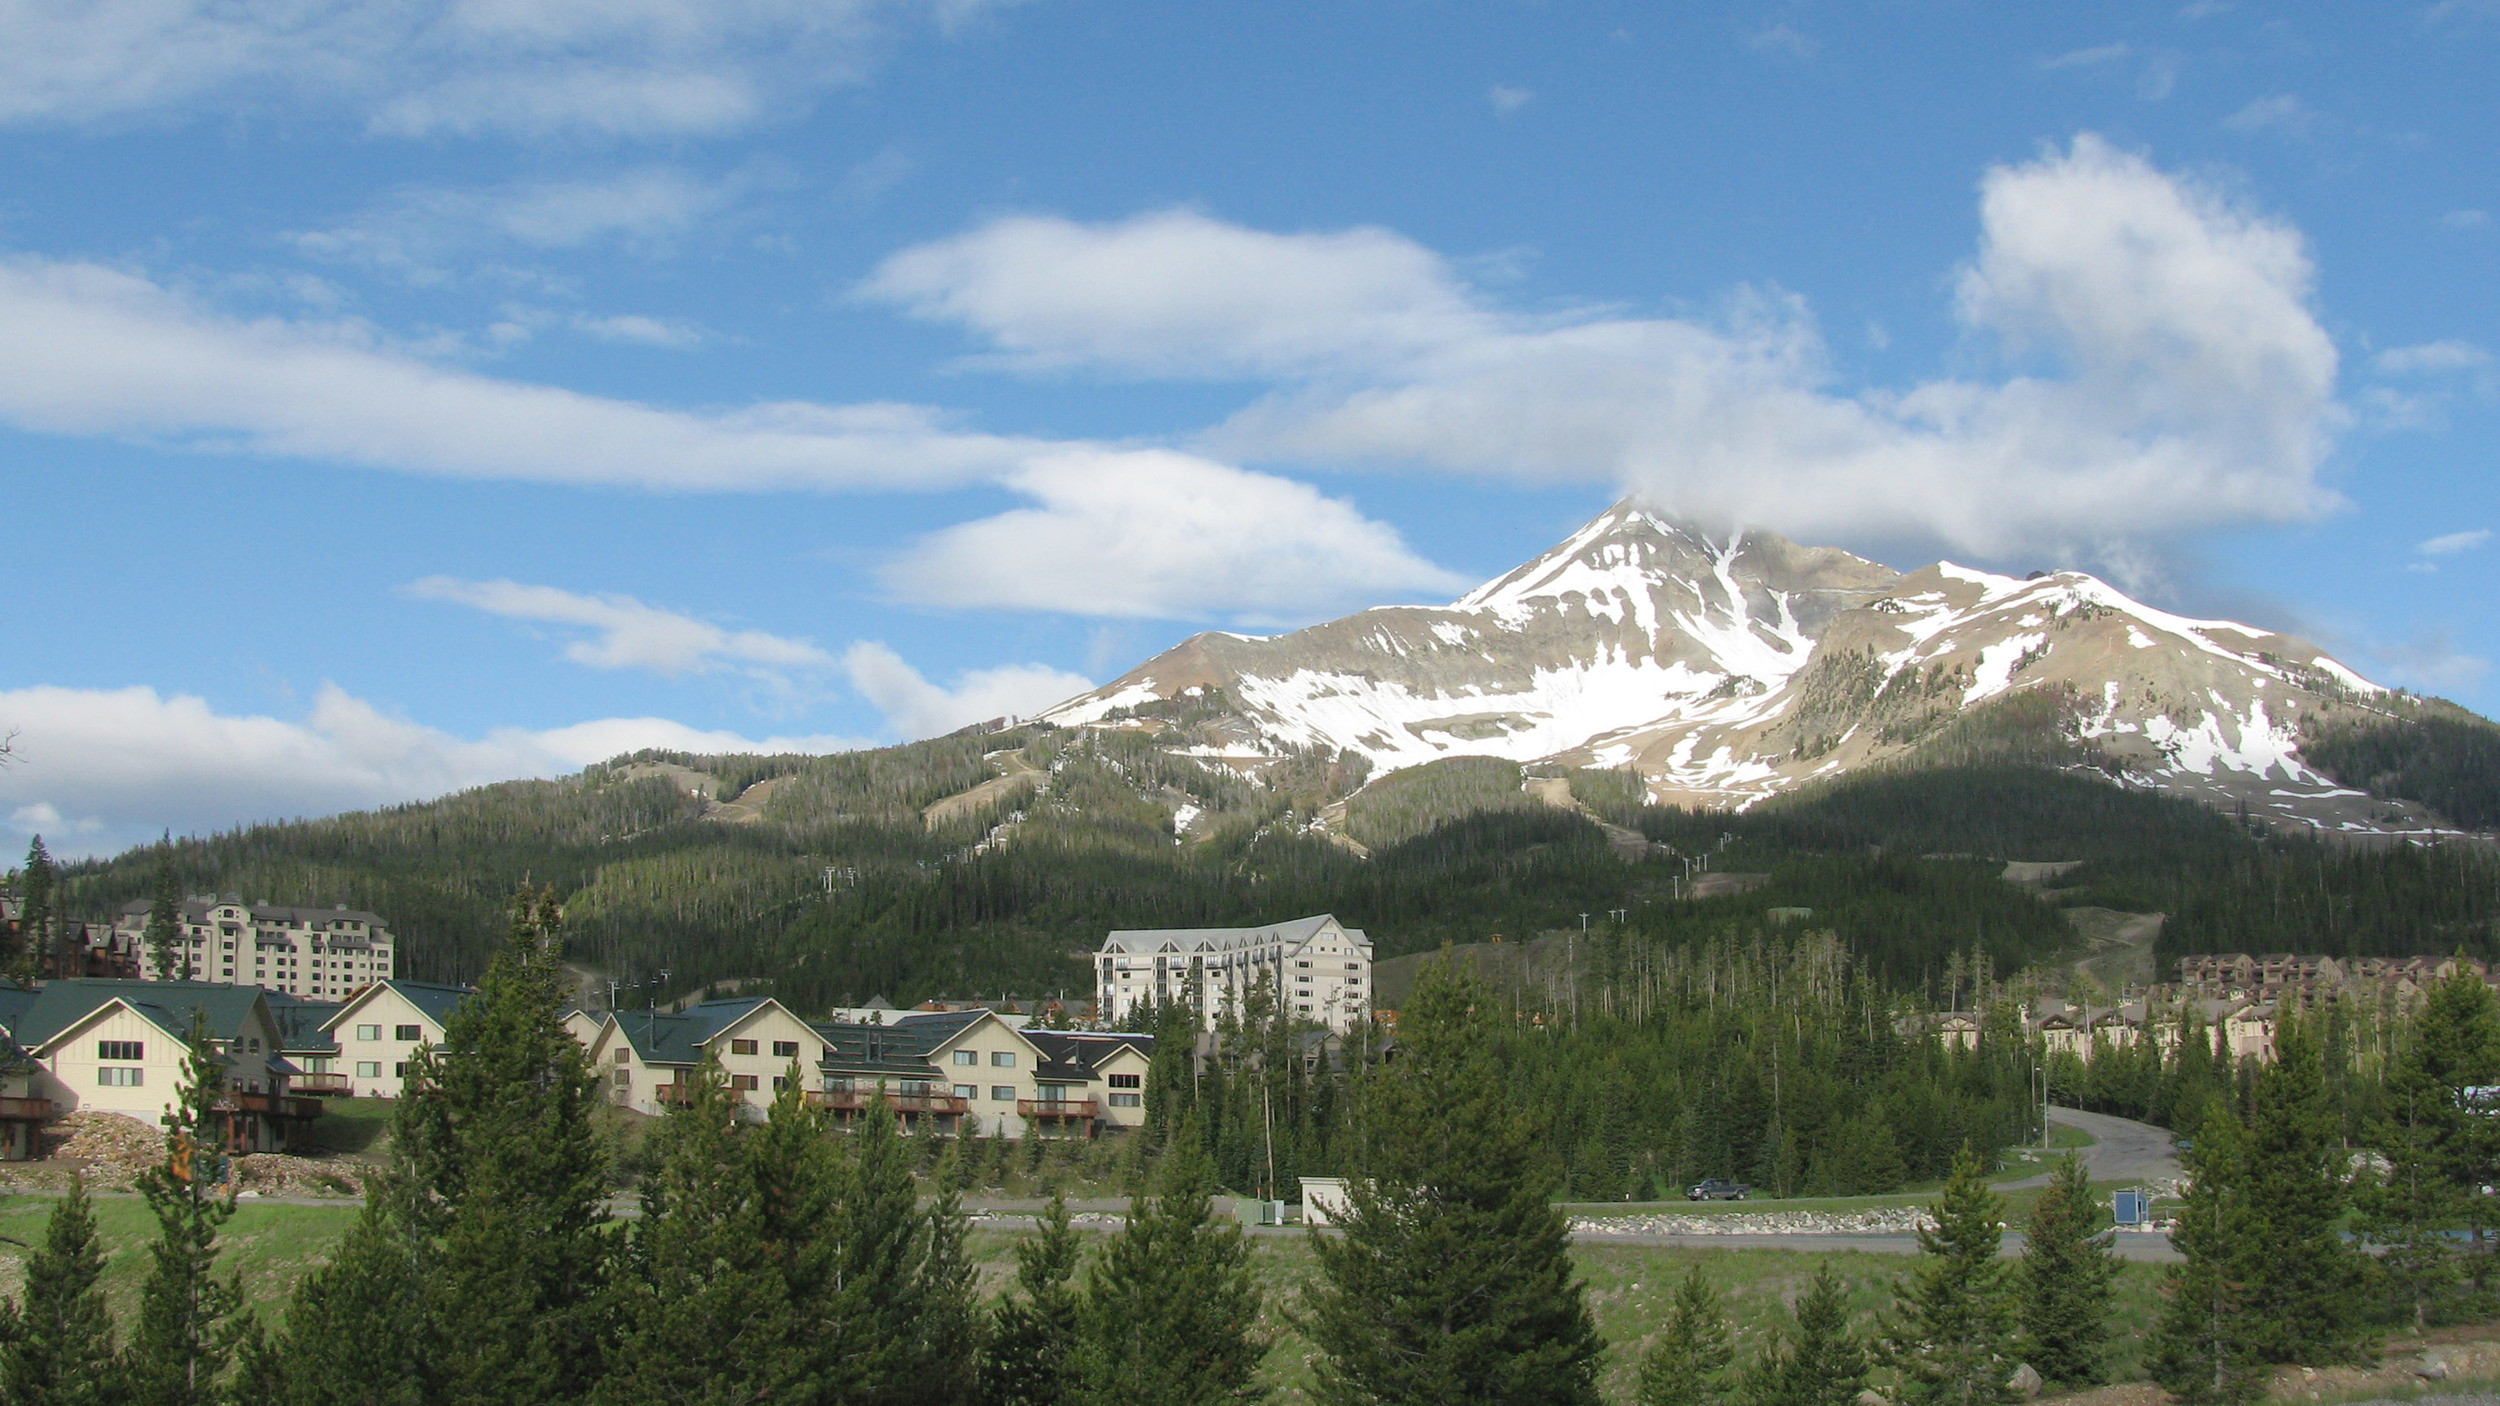 Image Courtesty Big Sky Resort